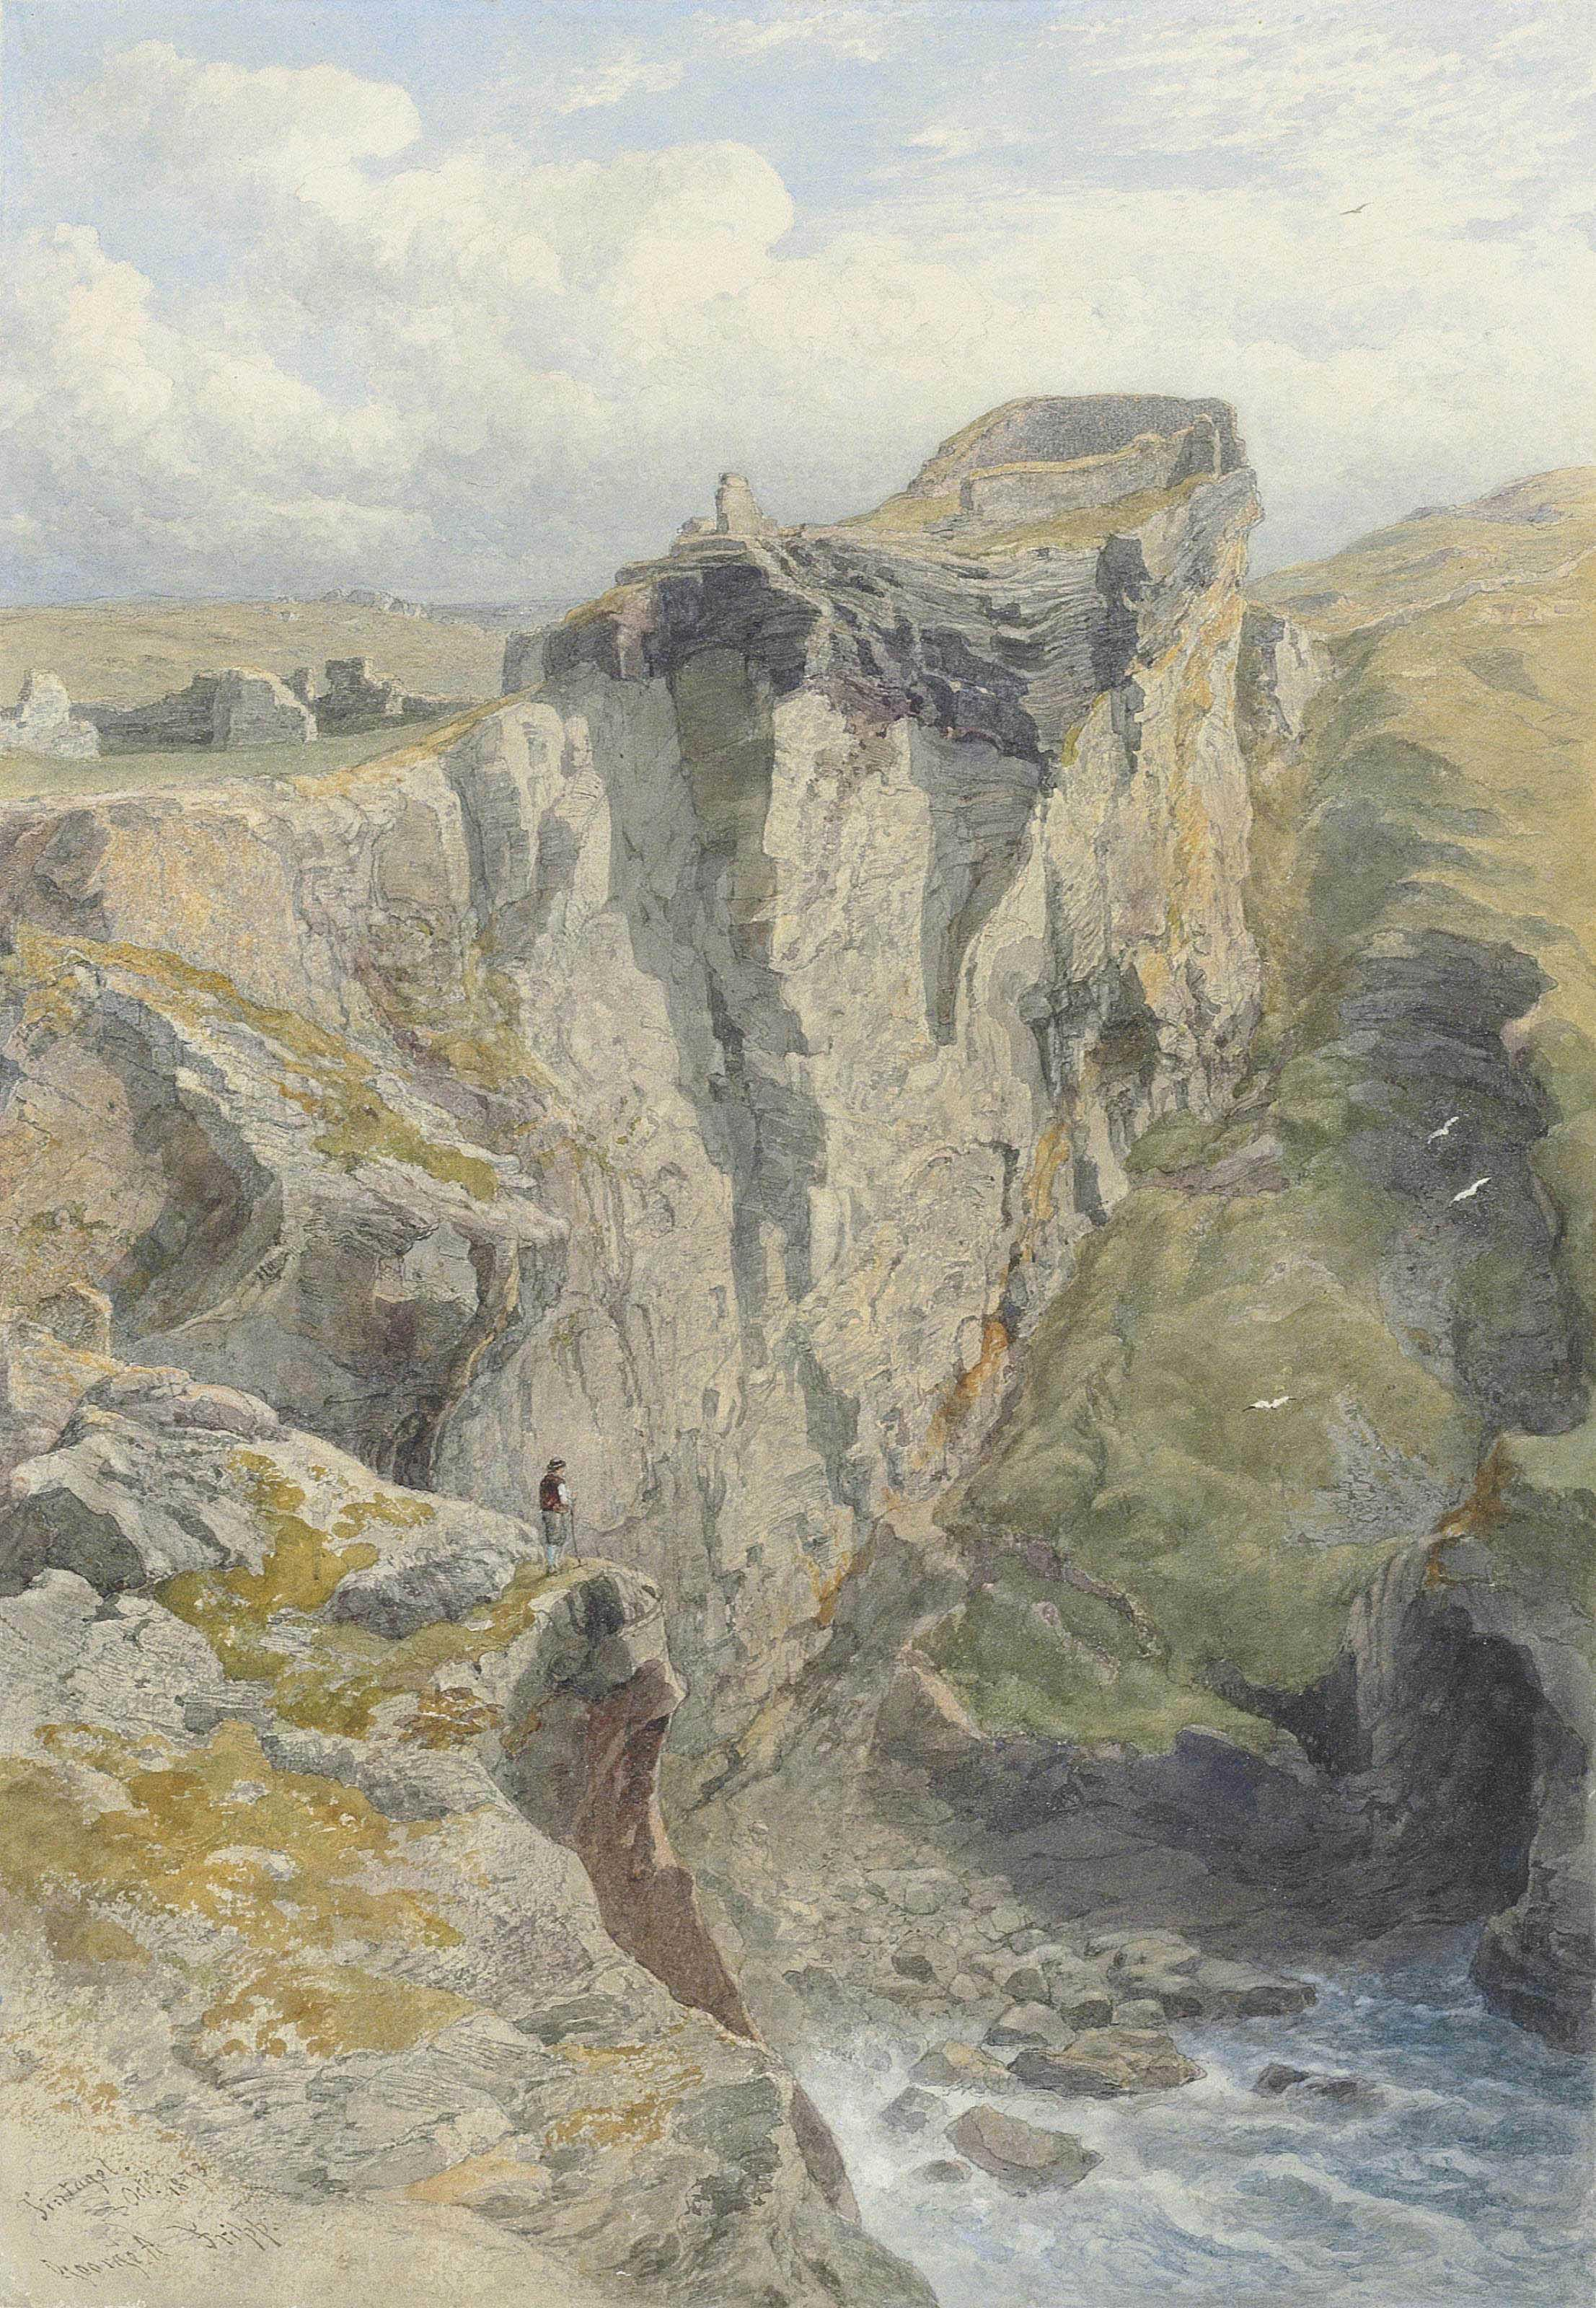 A figure on the cliff overlooking the sea below the ruins of Tintagel Castle, Cornwall